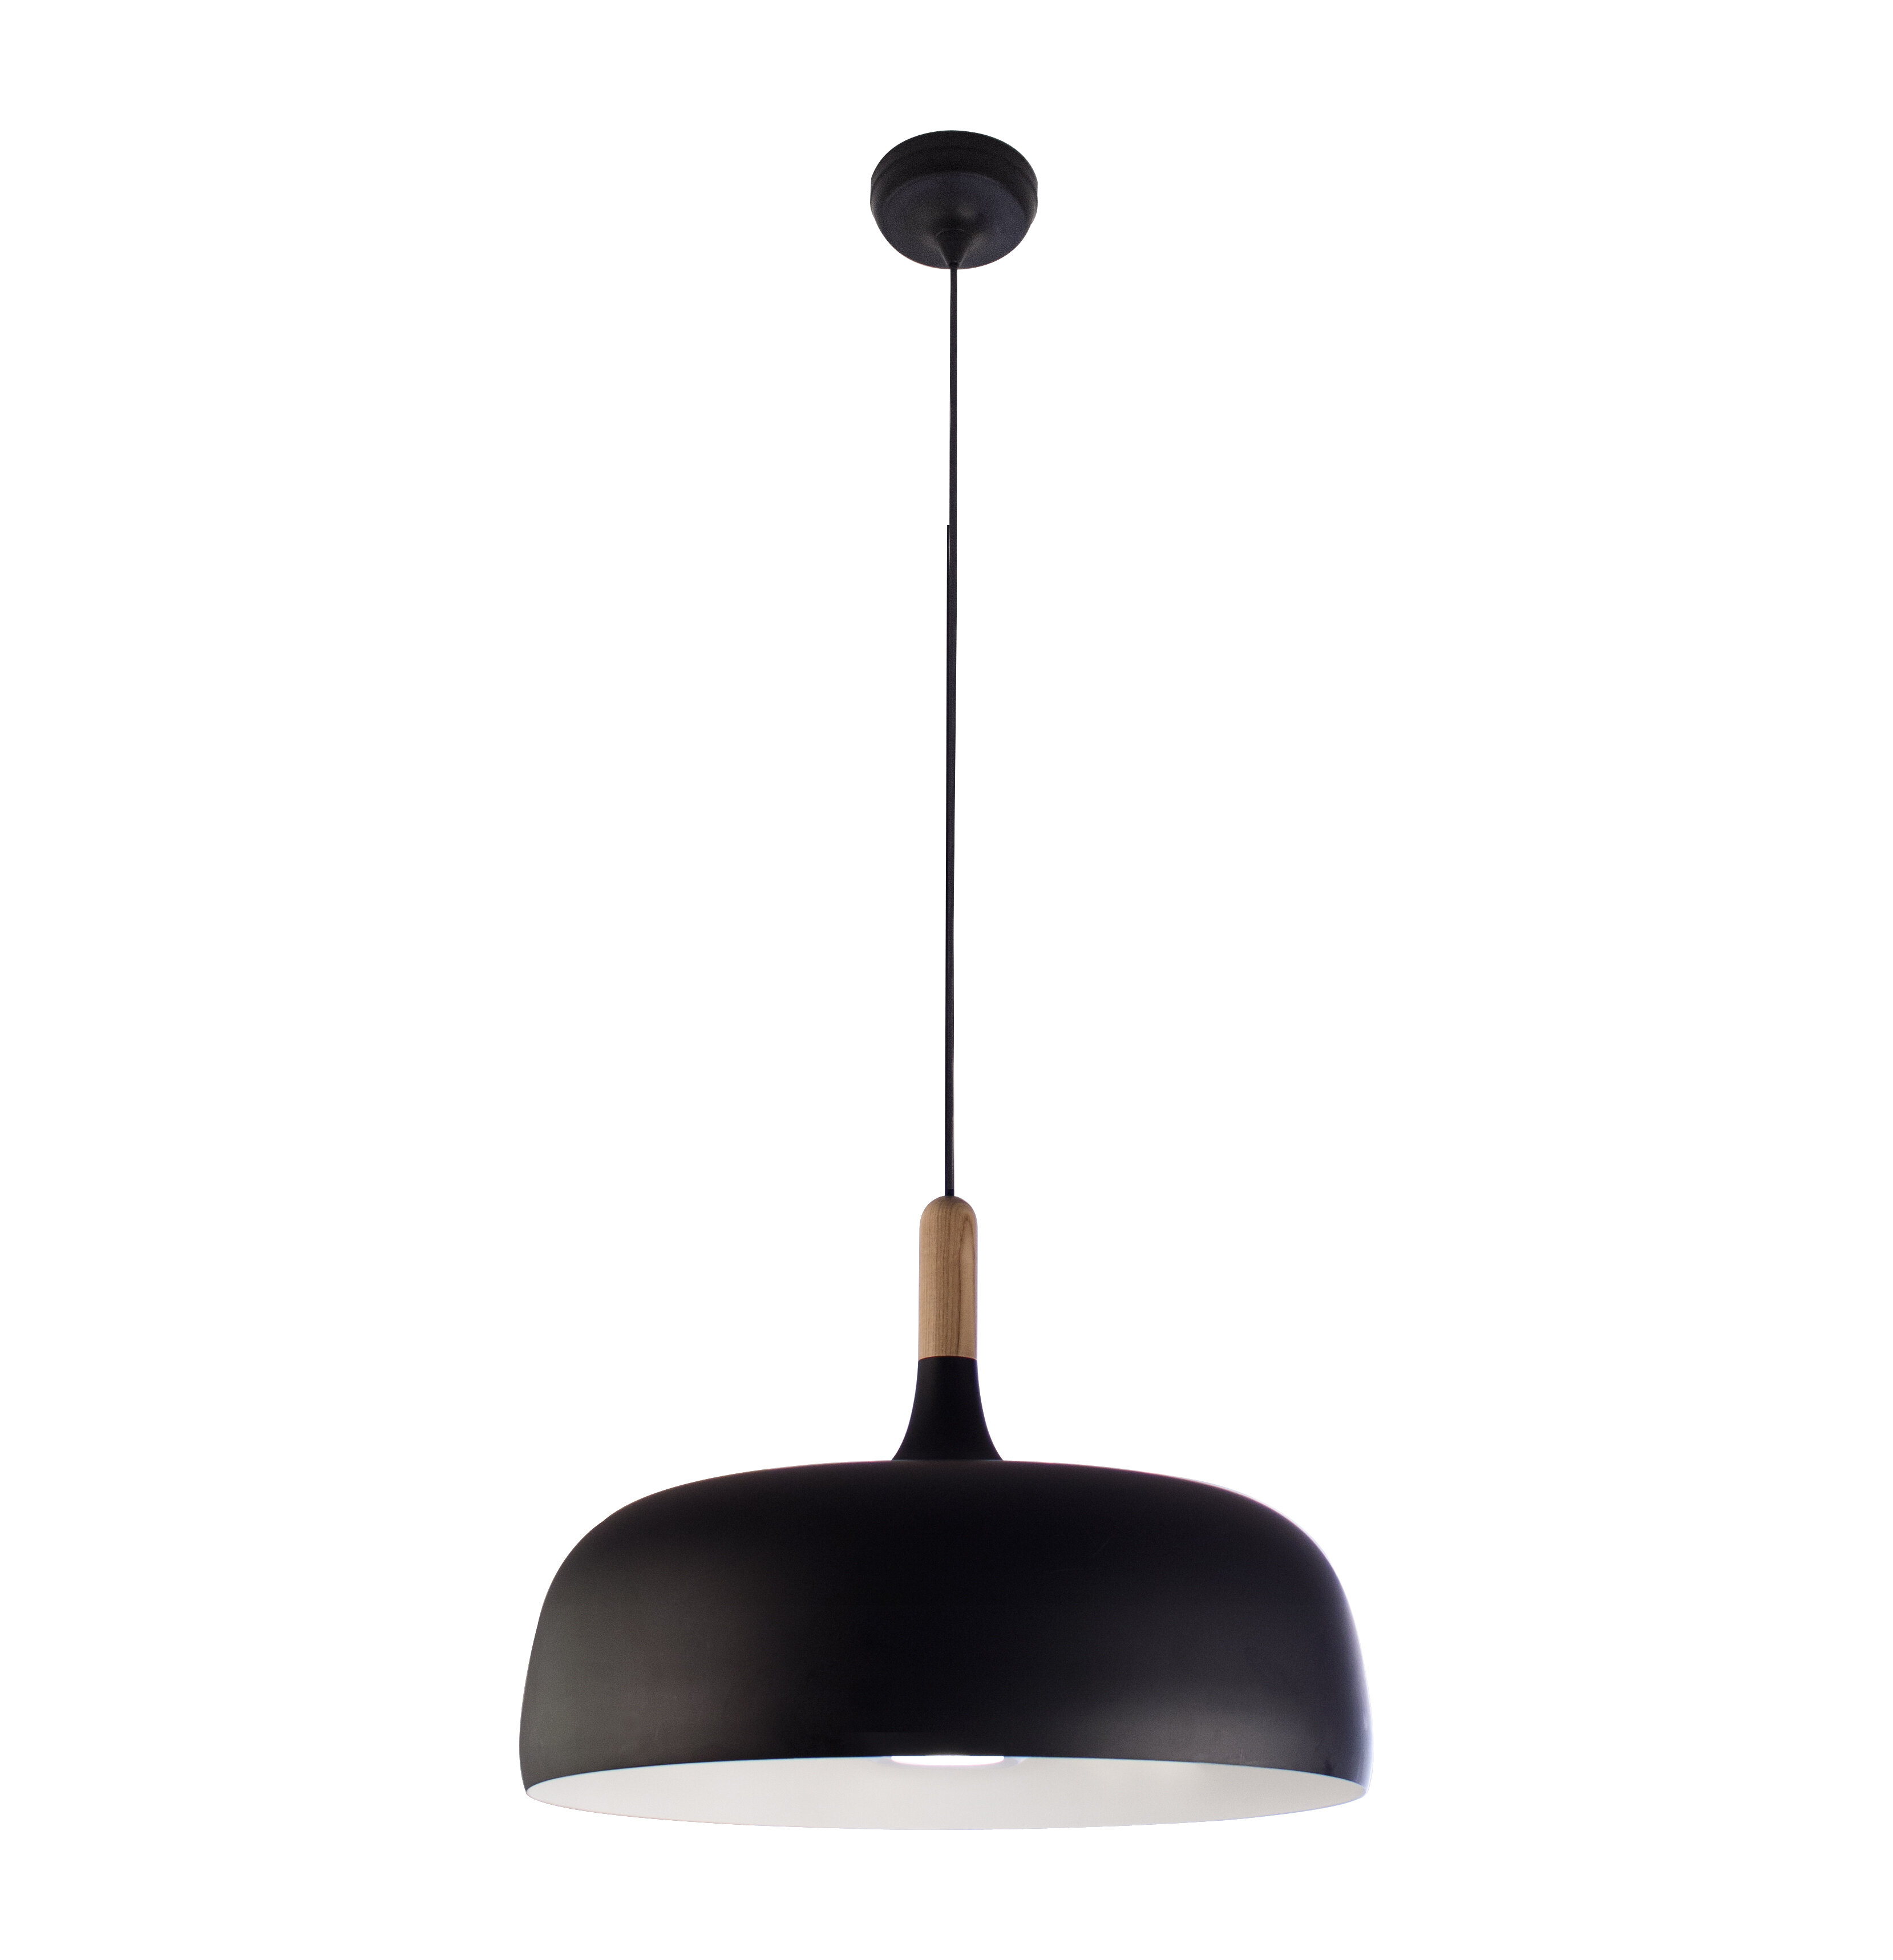 room wooden kitchen industrial black ceiling and retro ceilings for pendant shade lighting living metal light mstar